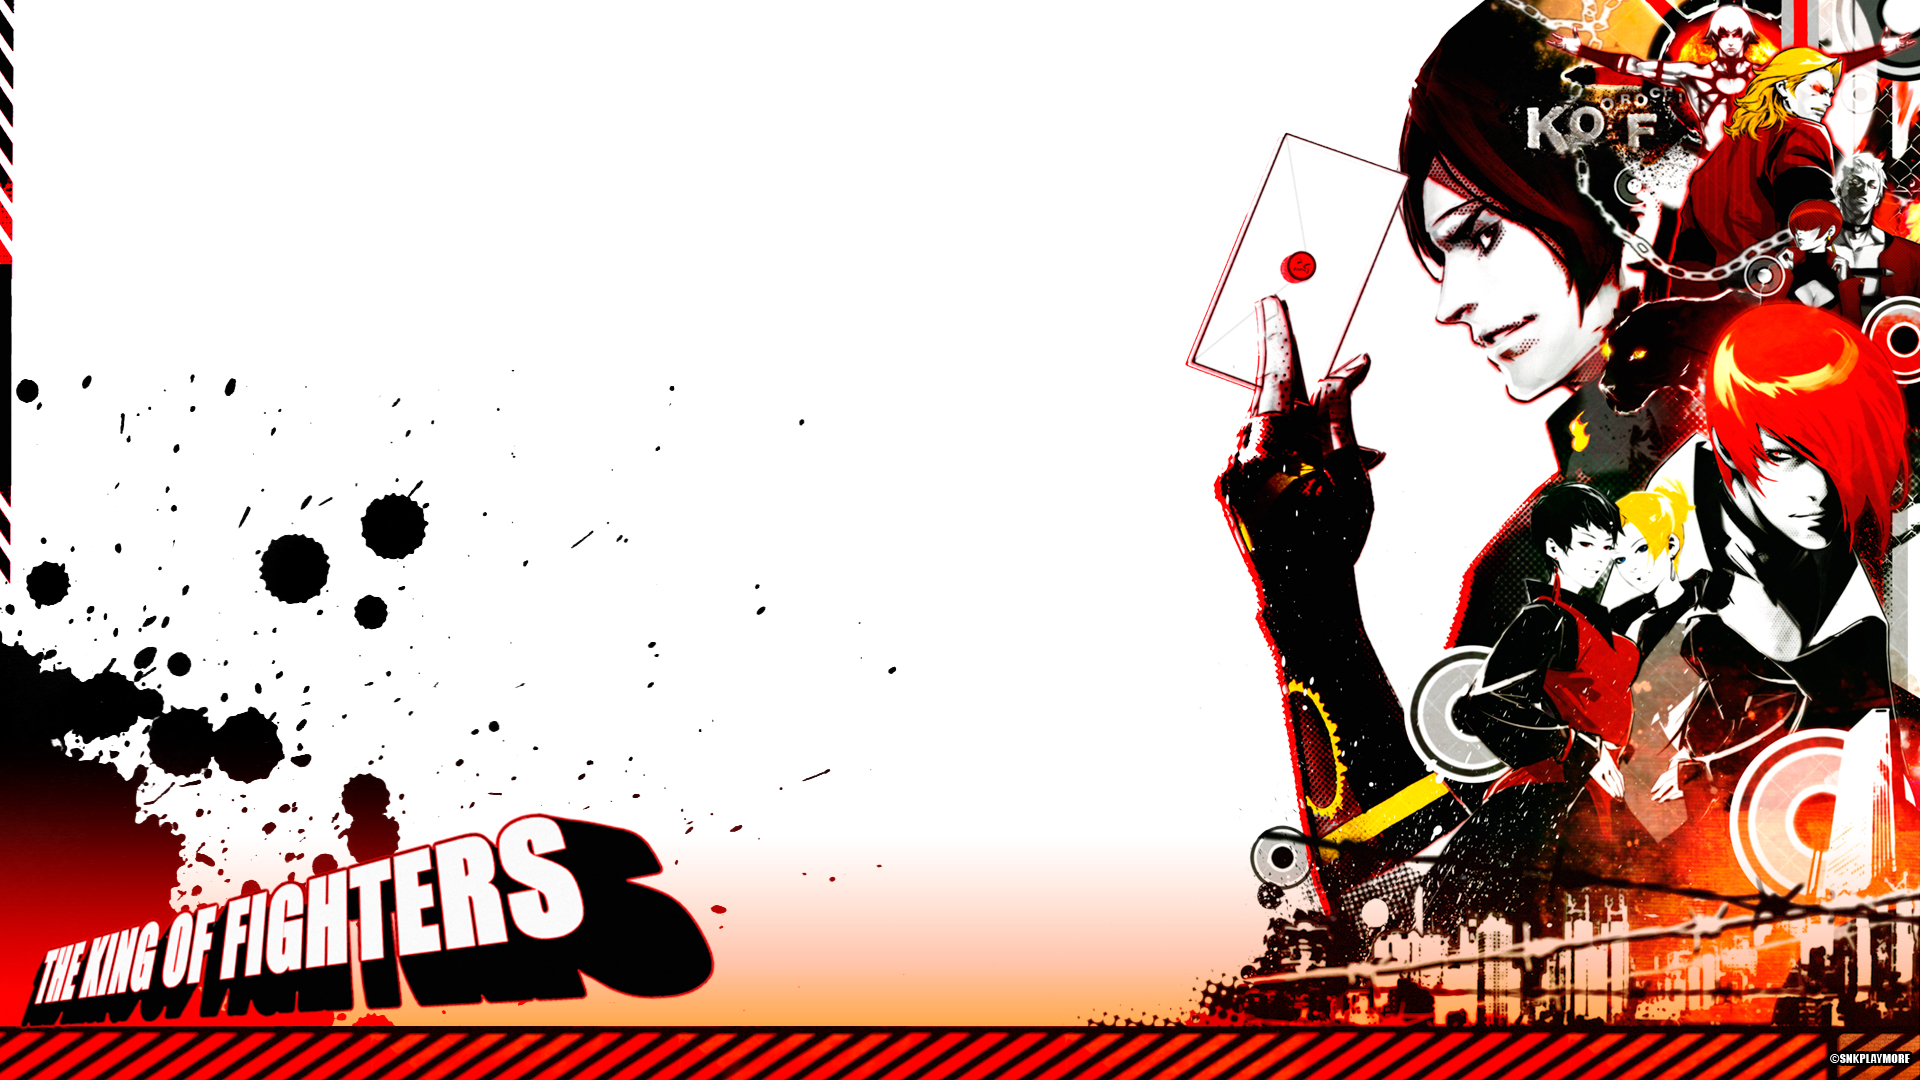 The King Of Fighters Hd Wallpaper 903318 Zerochan Anime